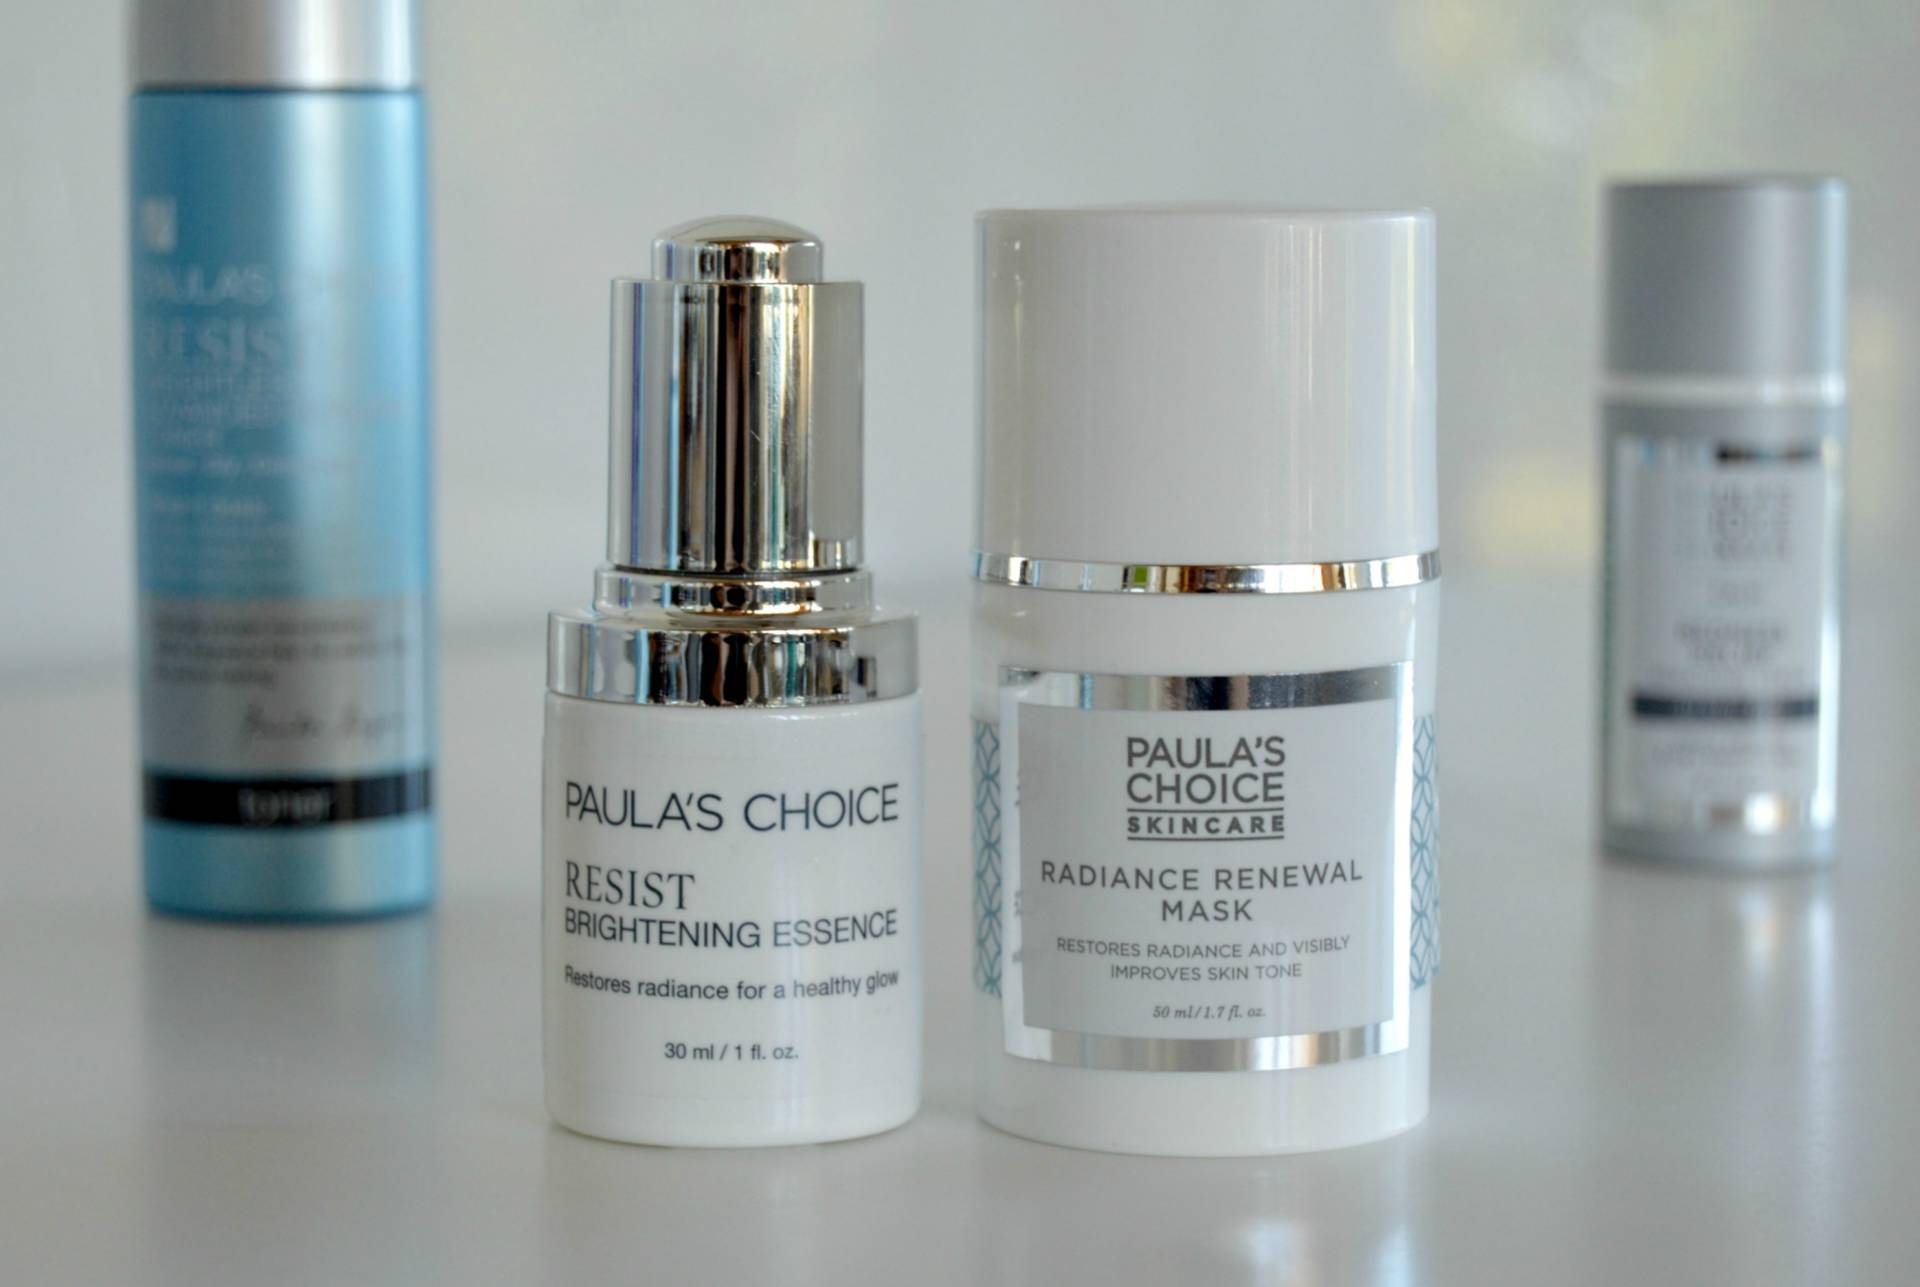 paulas choice radiance renewal mask brightening essence new review inhautepursuit